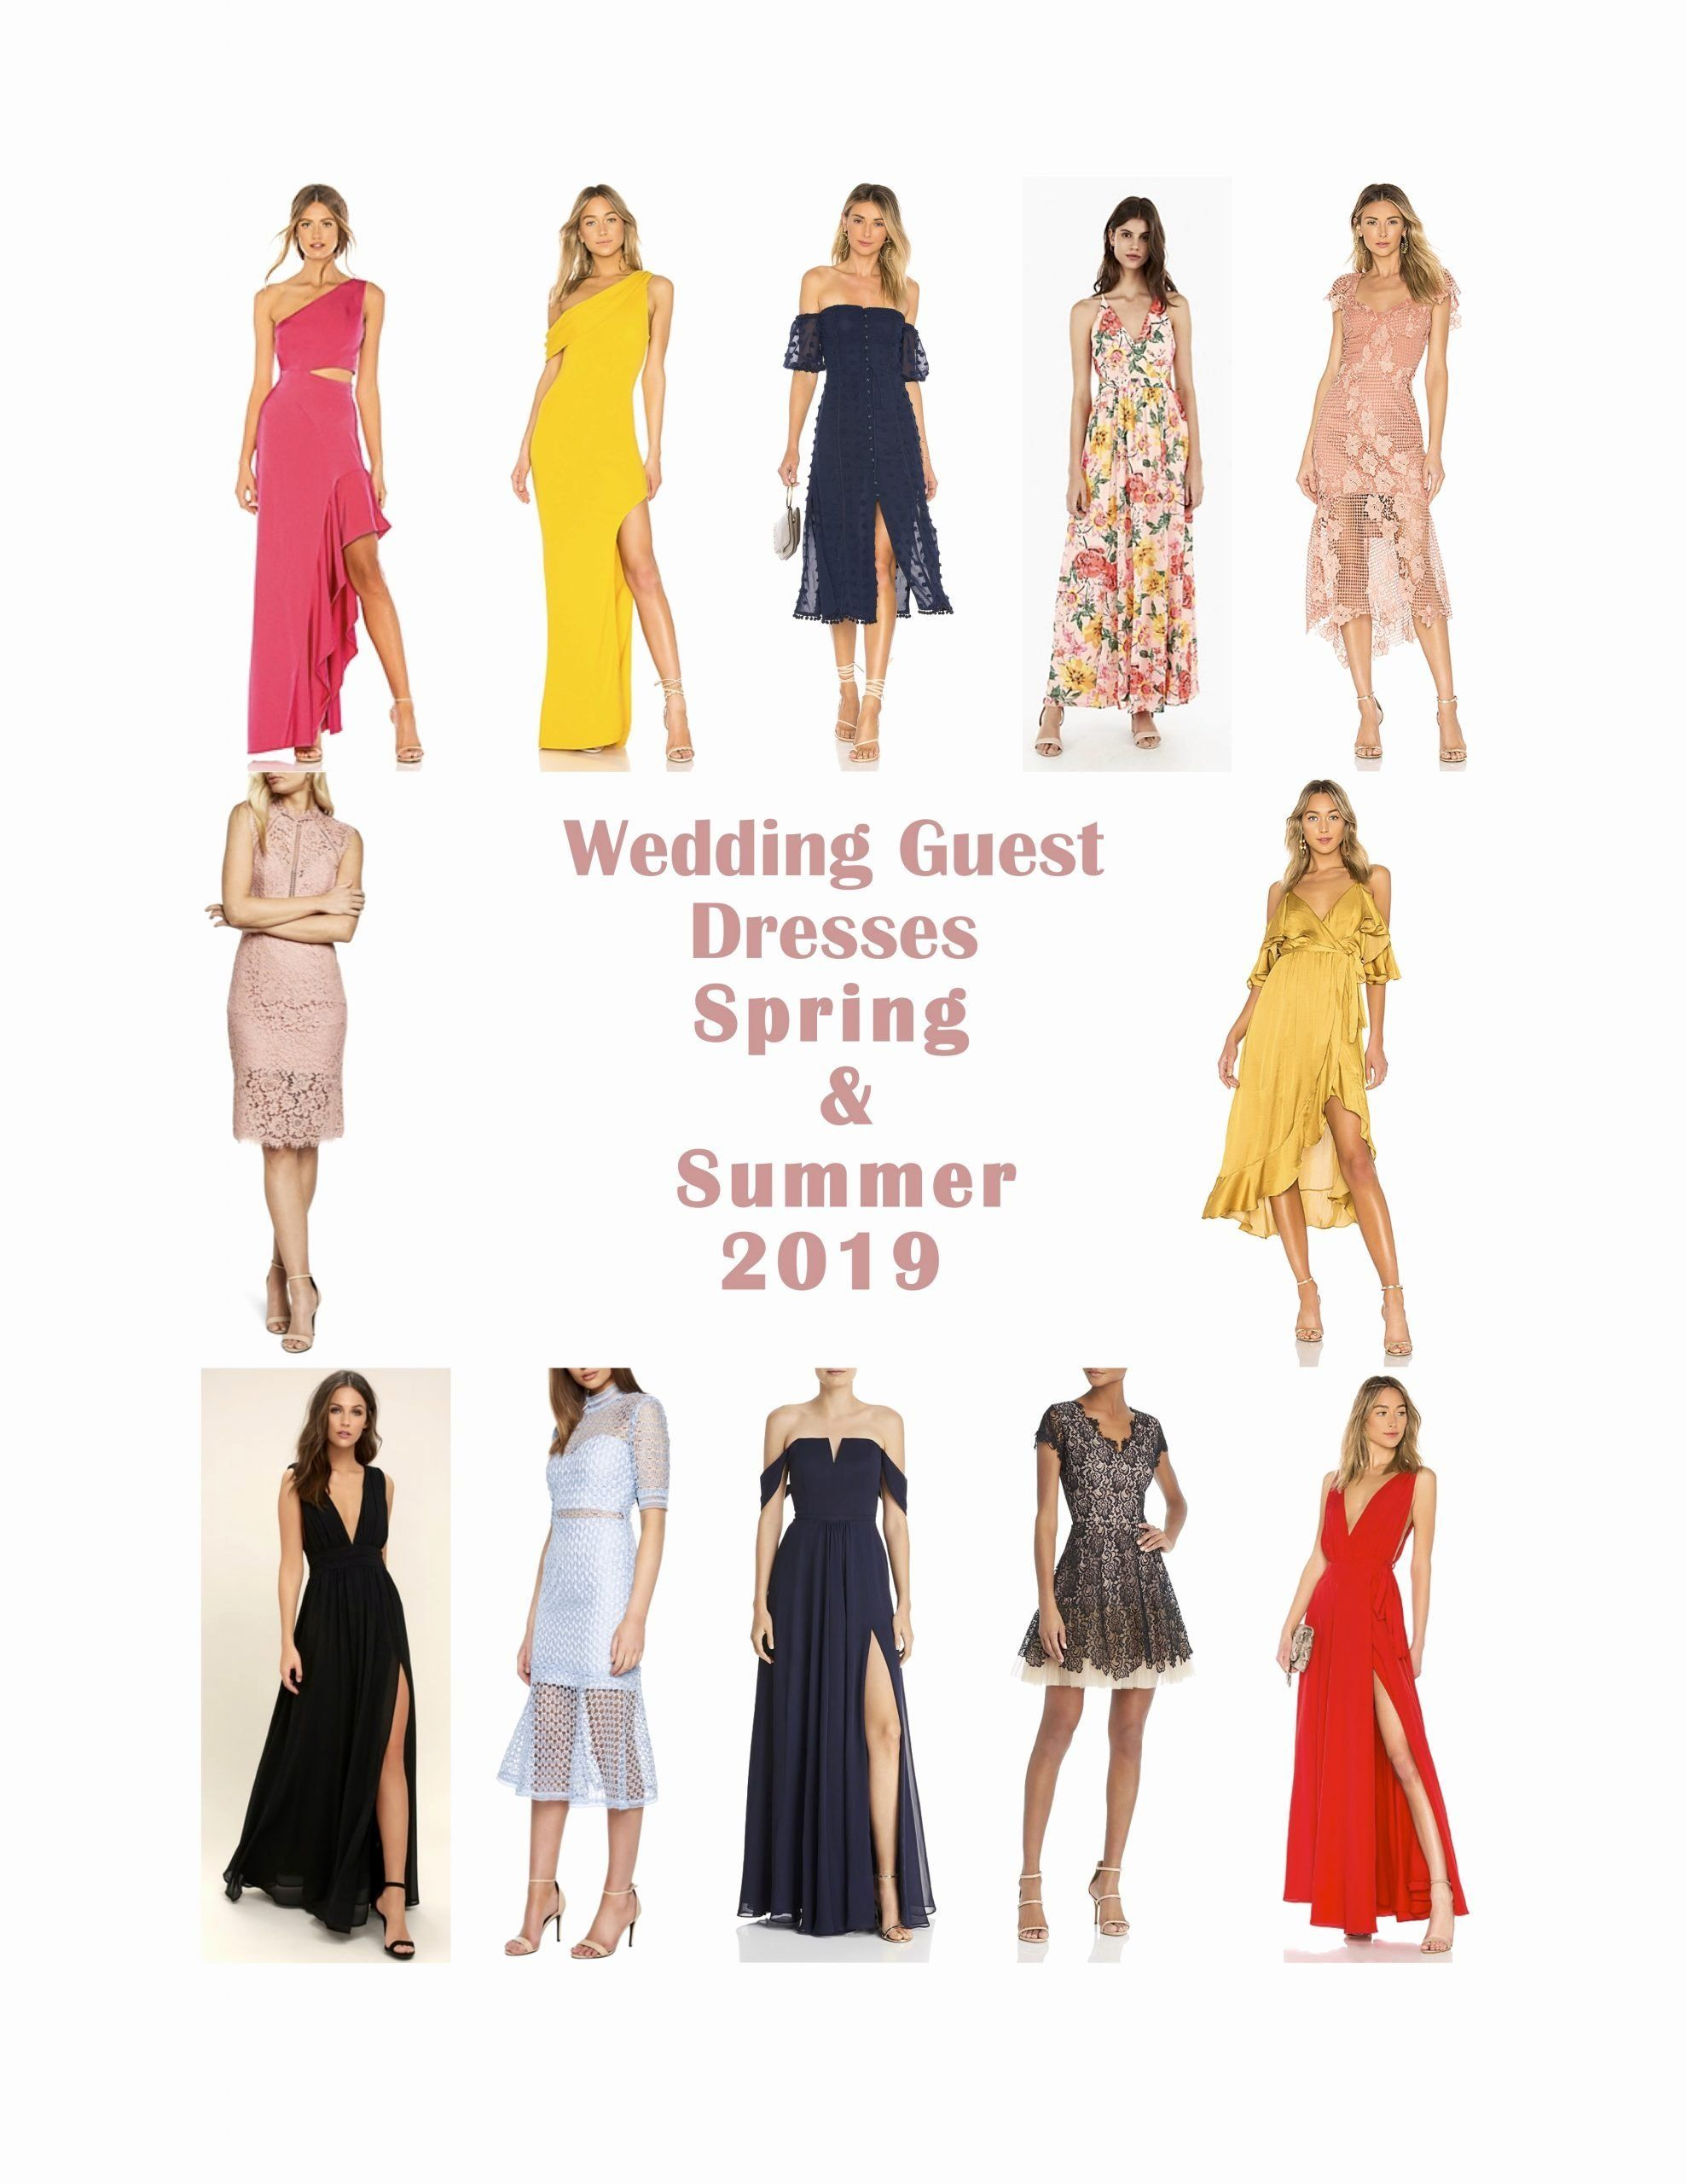 Wedding Guest Dresses for Spring 5 Best Of Wedding Guest